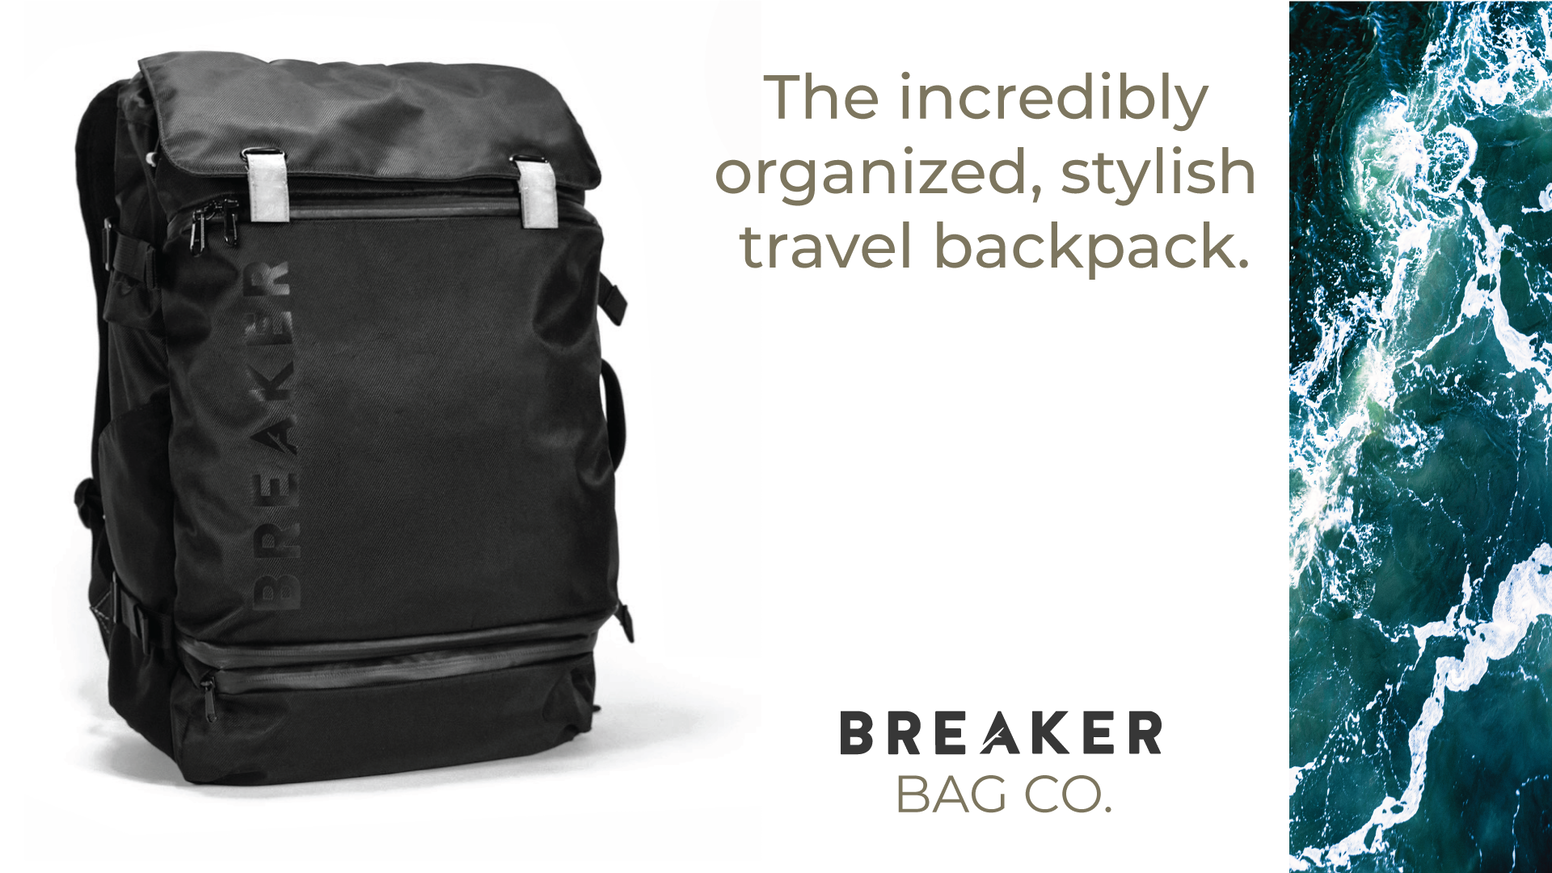 Giving The World A Comfortable Organized And Well Designed Travel Backpack To Create